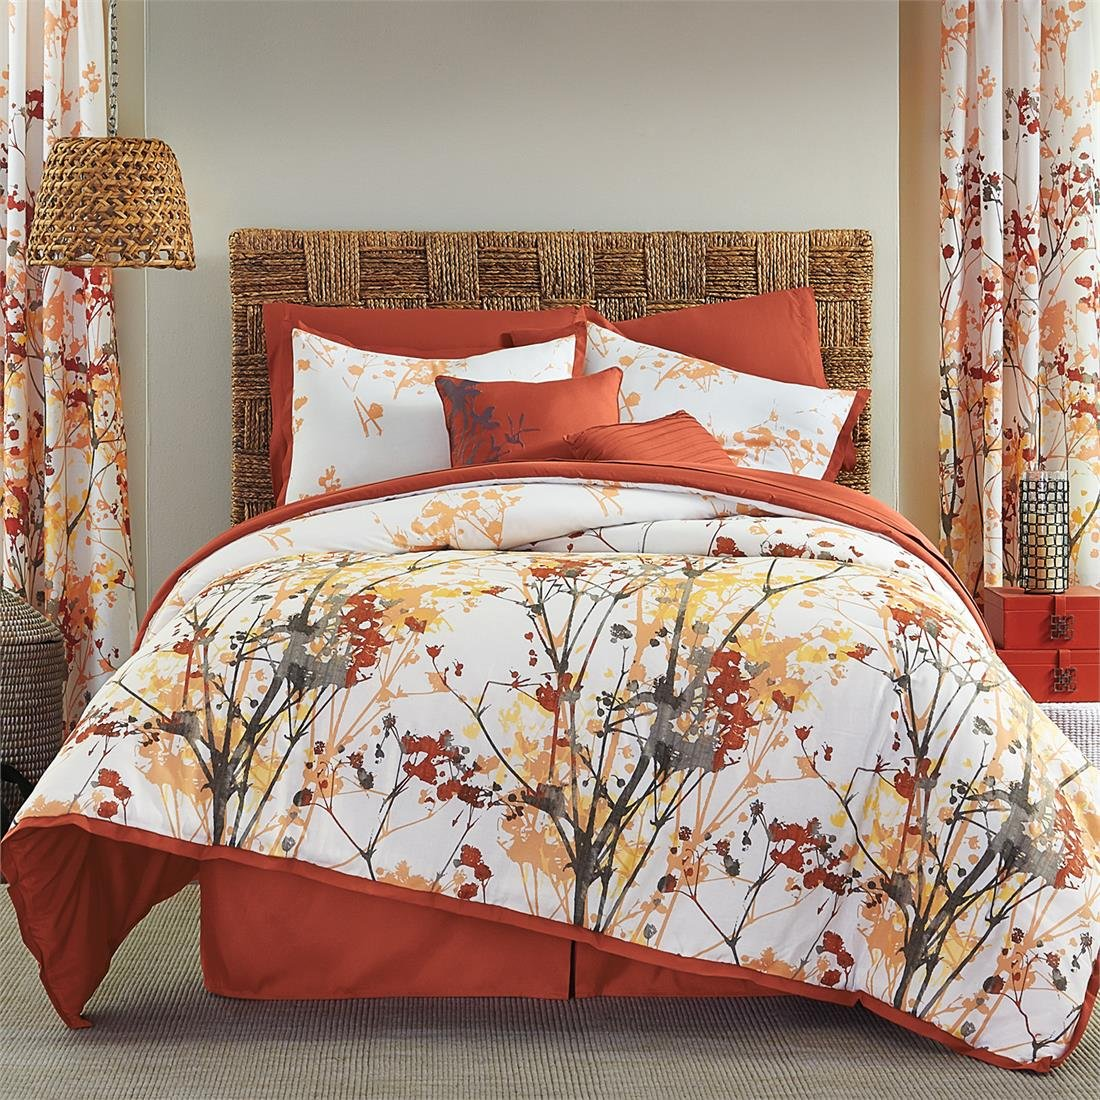 Brylanehome Funky Floral Oversized Multi-Pc. Comforter Set (Orange Grey,Queen)